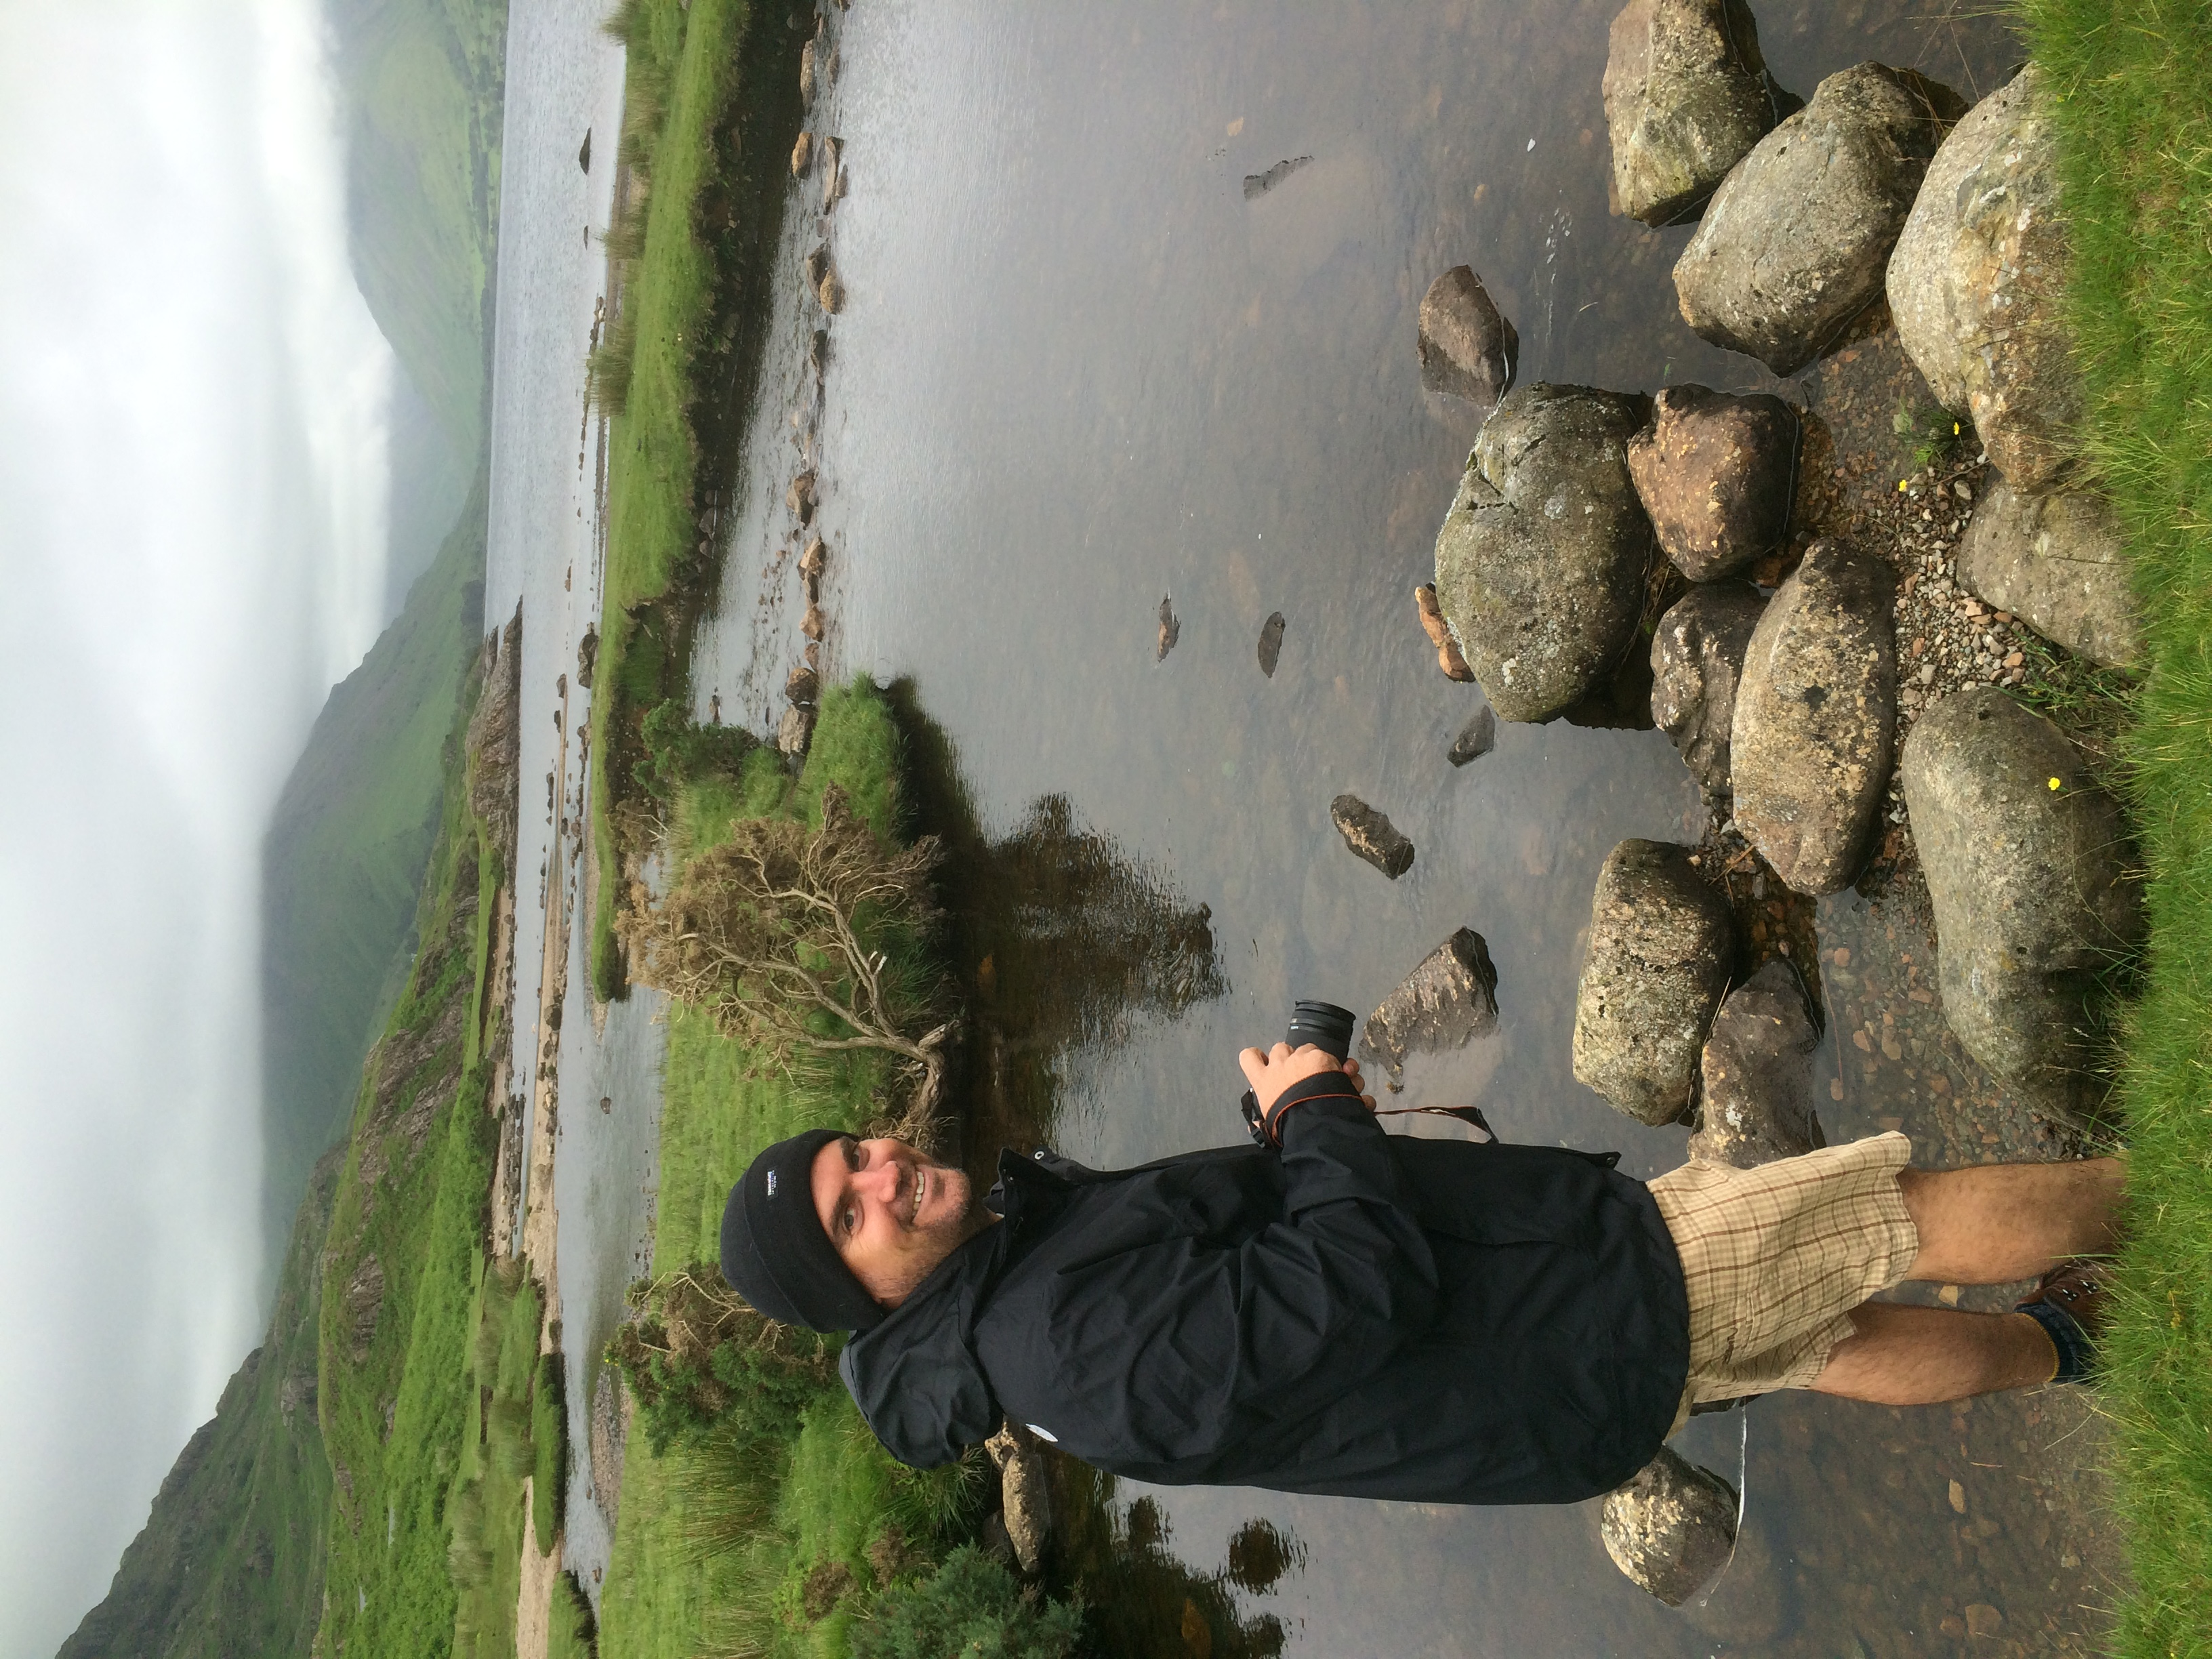 Adam considering taking a dip in Wast Water. Not really....